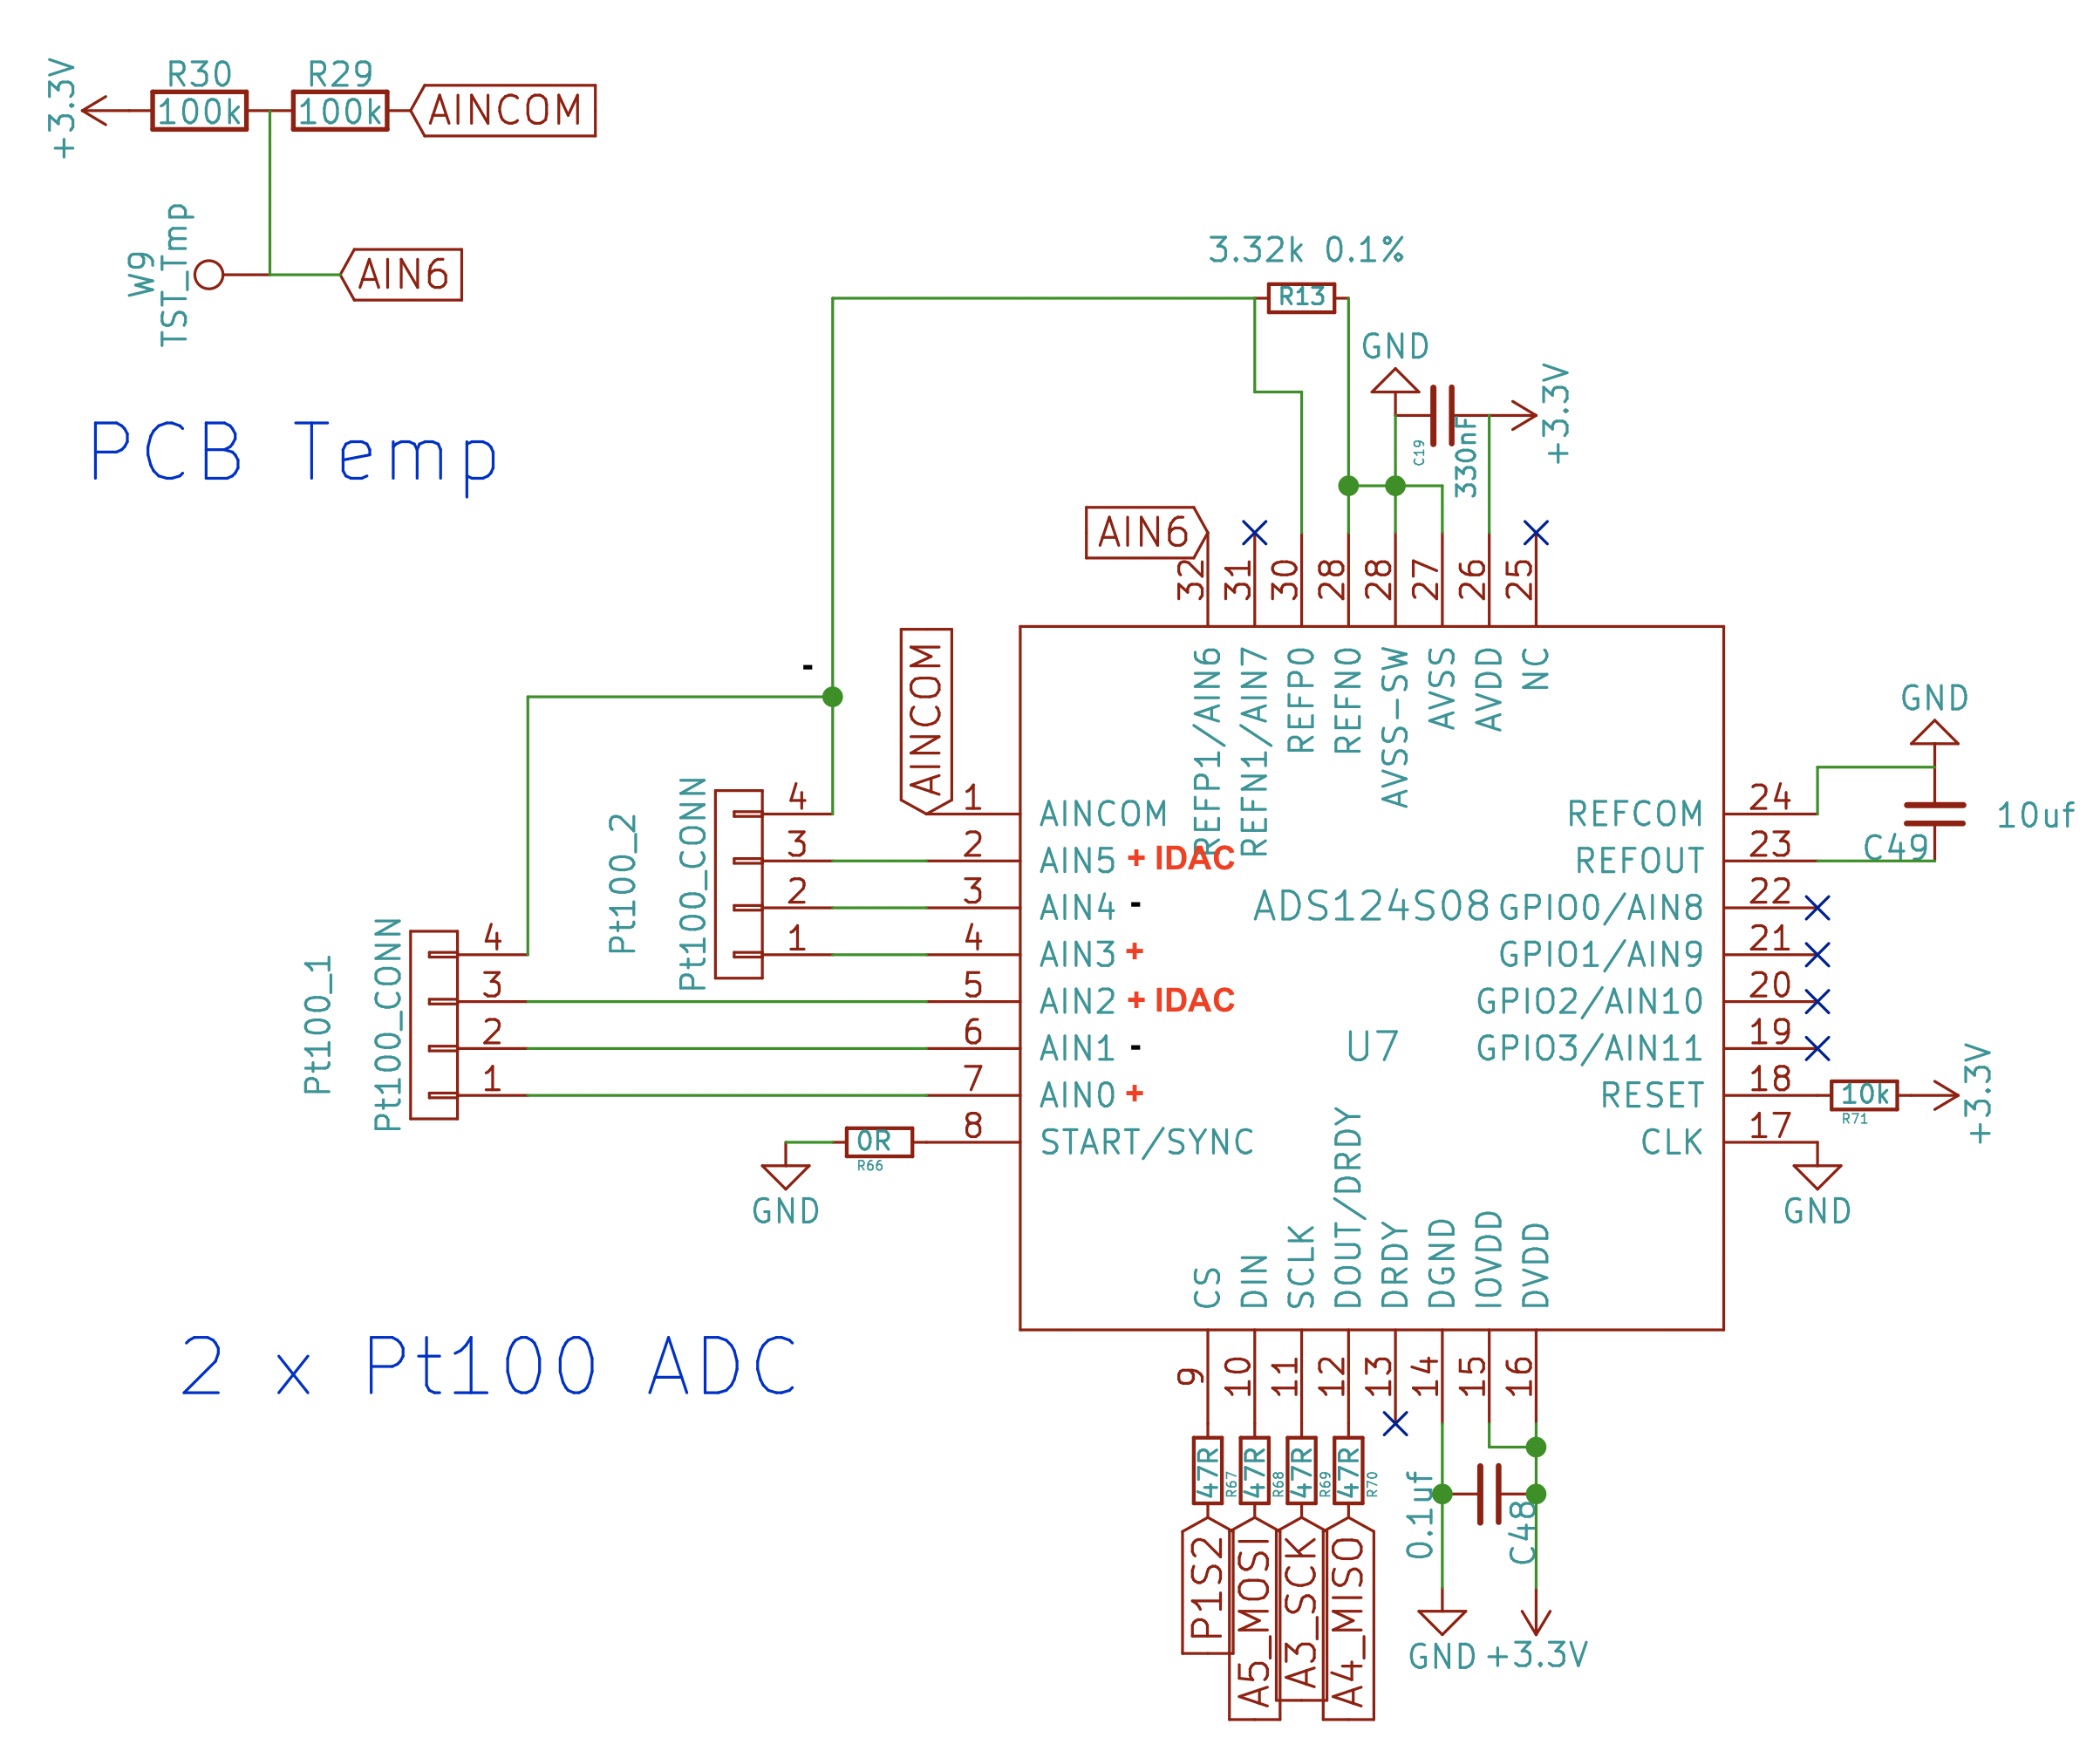 Red wires are connected to AIN0 and AIN2 for the first RTD. Red wires are  connected to AIN3 and AIN5 for the second RTD. R29 is a 100k thermistor  that ...